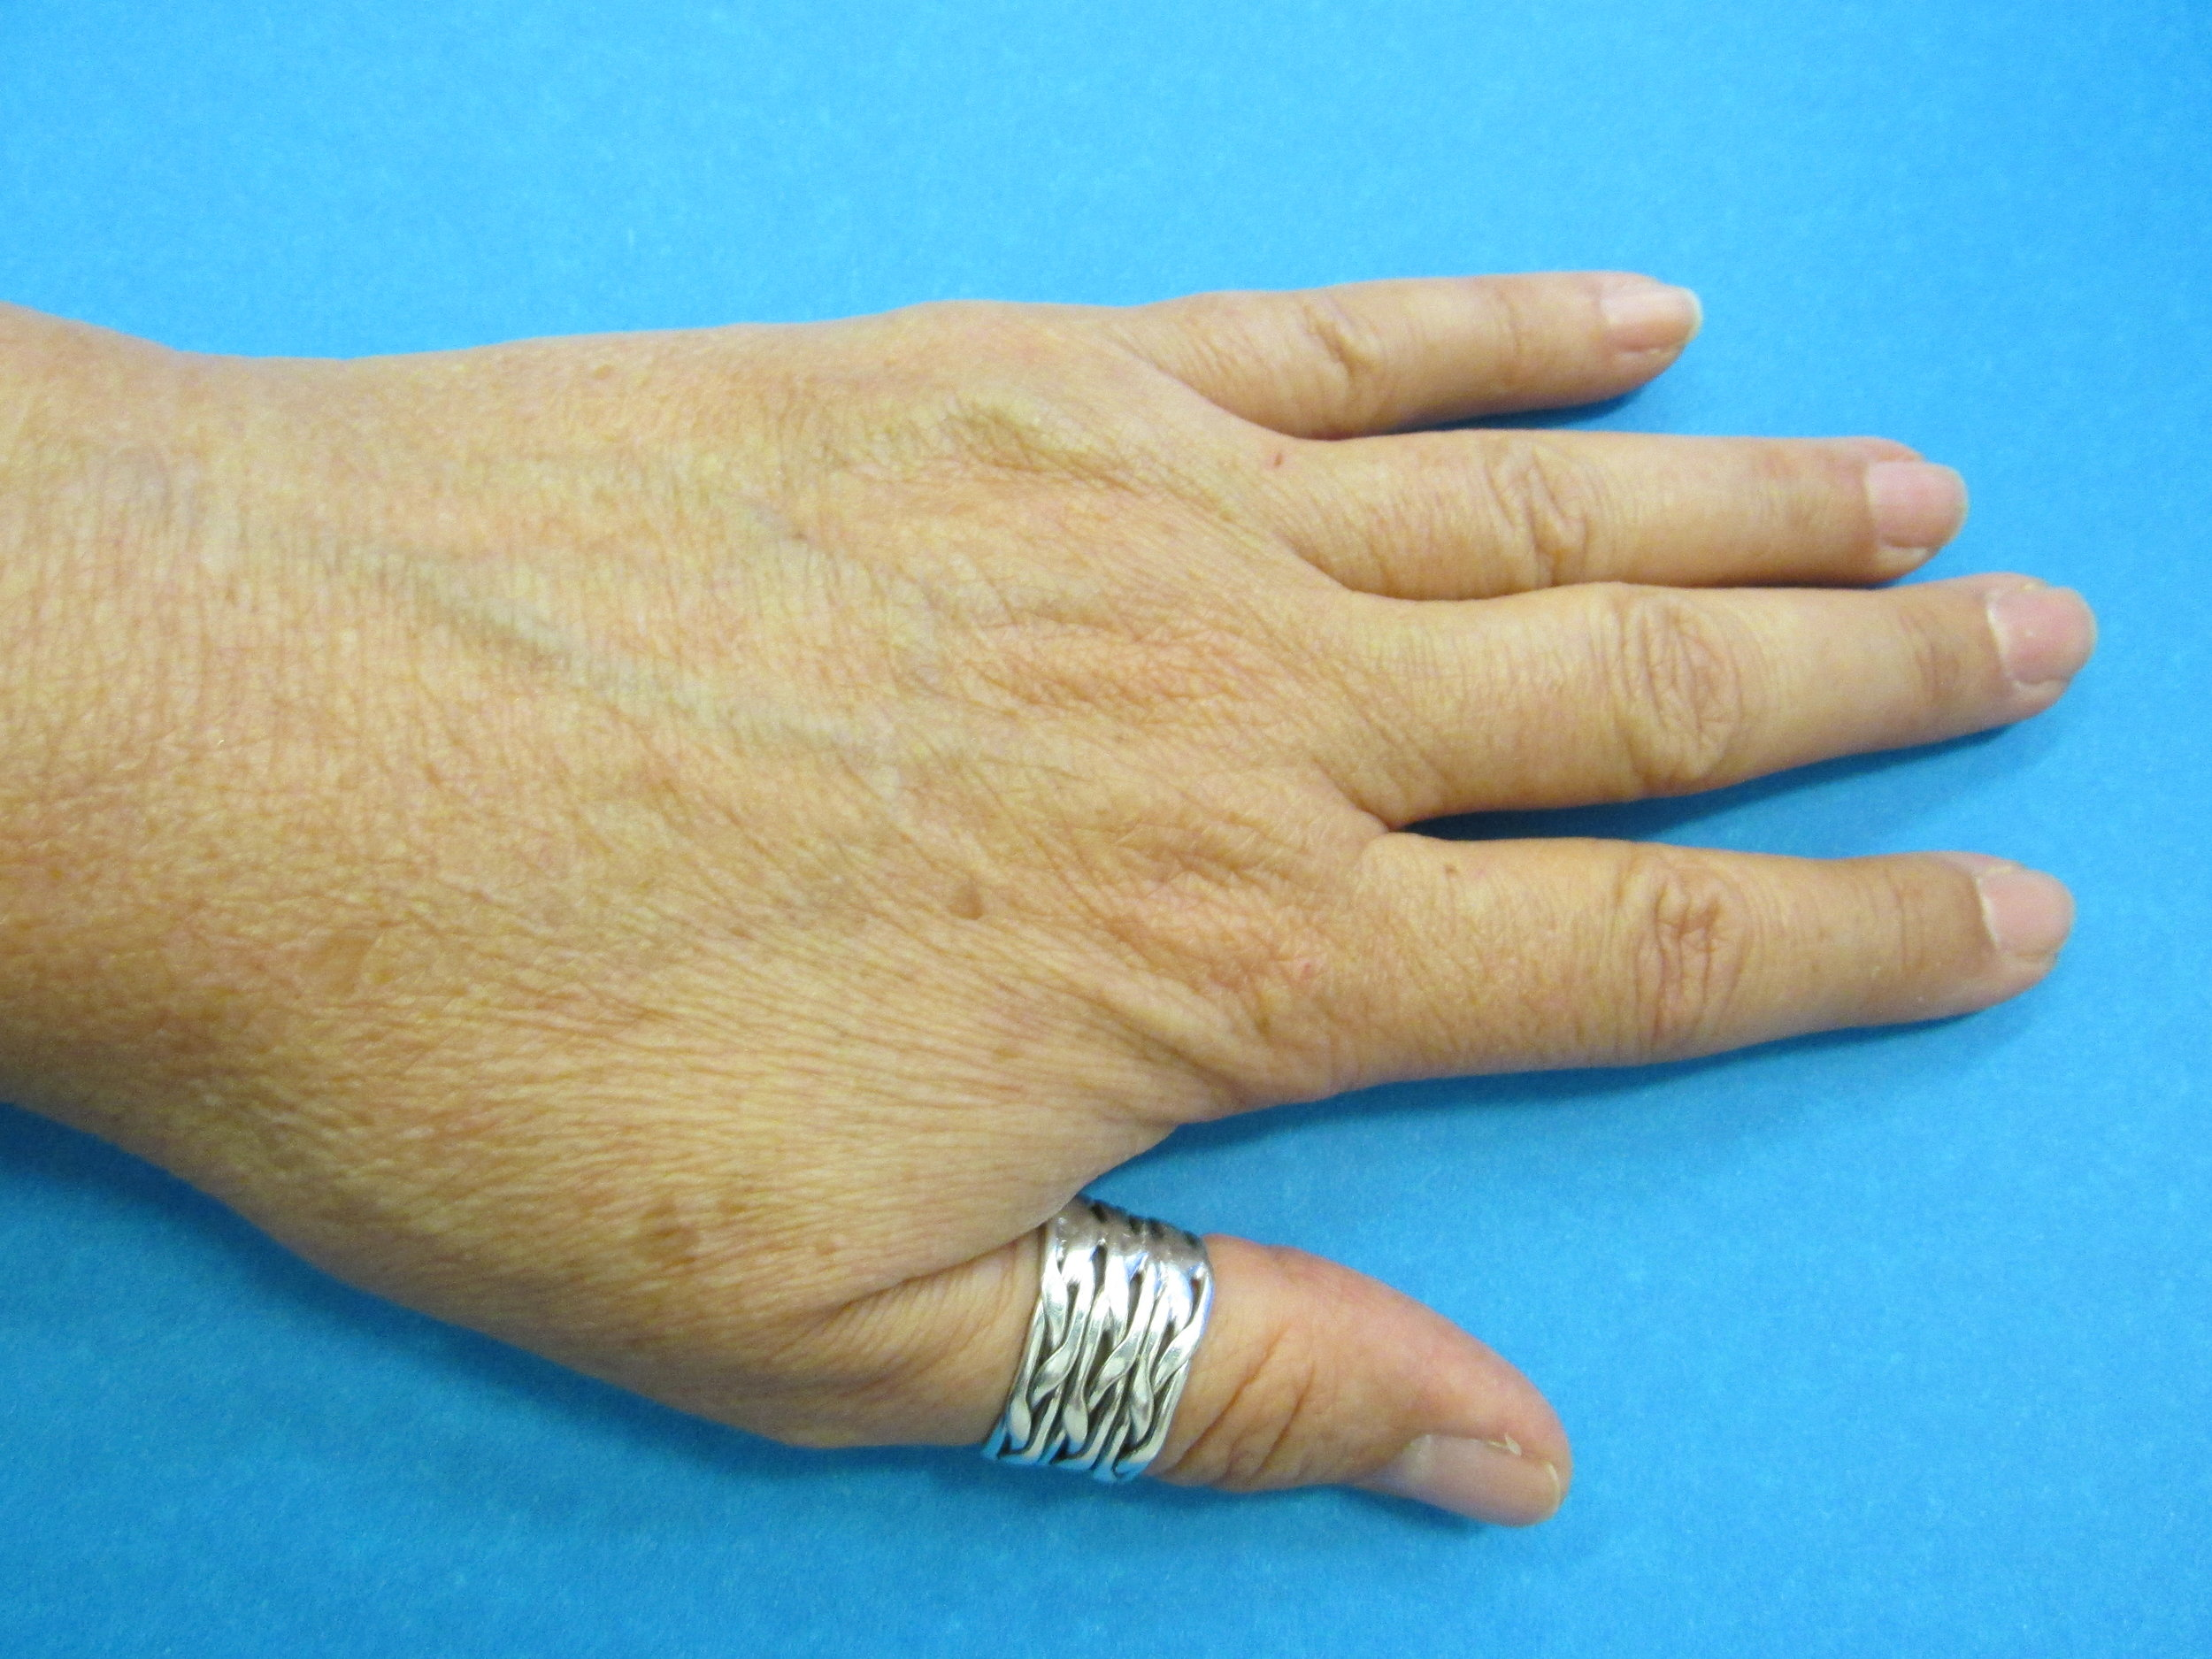 Carpal Tunnel Surgery - After one college degree in Computer Science and 16 years in the industry, followed by 19 years of listing on ebay every week, Marquis etc. will be closed for hand surgery starting today. Our expected return is August 25th but I will post the exact date to this website when I am recovered enough to return to work.